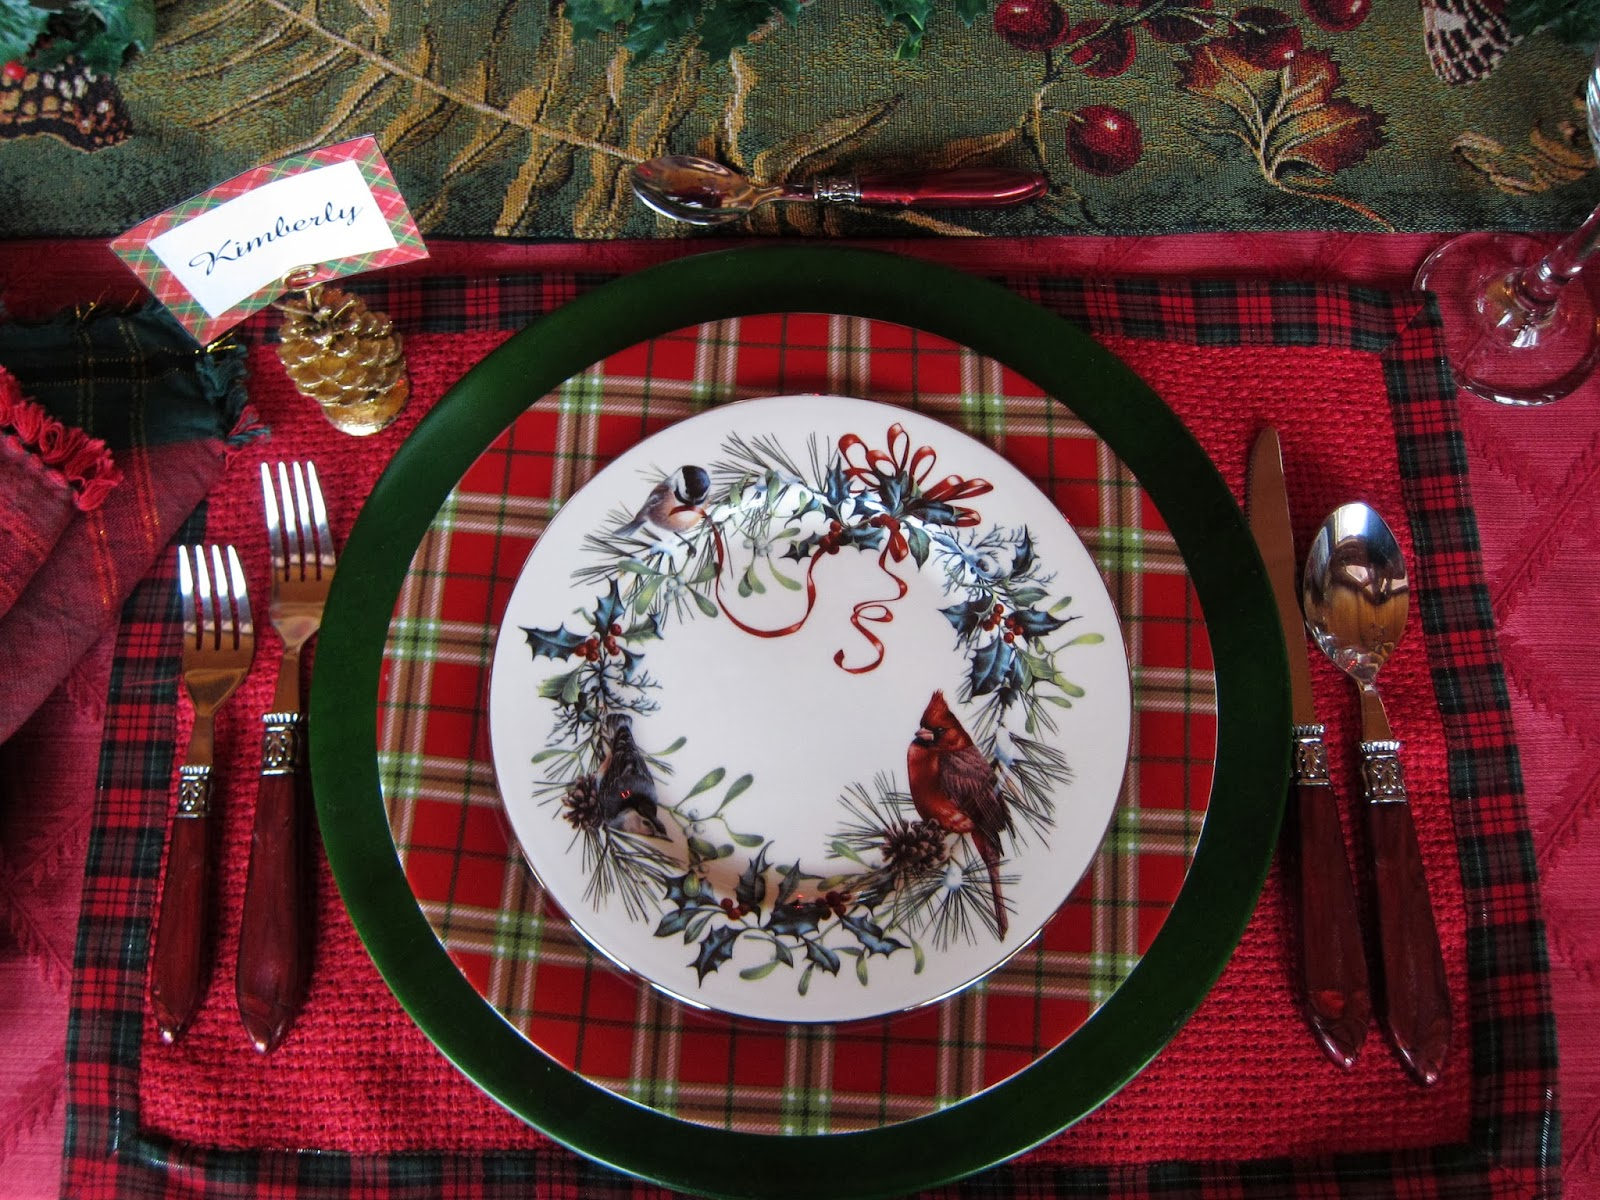 A graceful table plaid tidings of comfort and joy the lenox winter greetings salad plate has such a northwoods flair to it kristyandbryce Choice Image